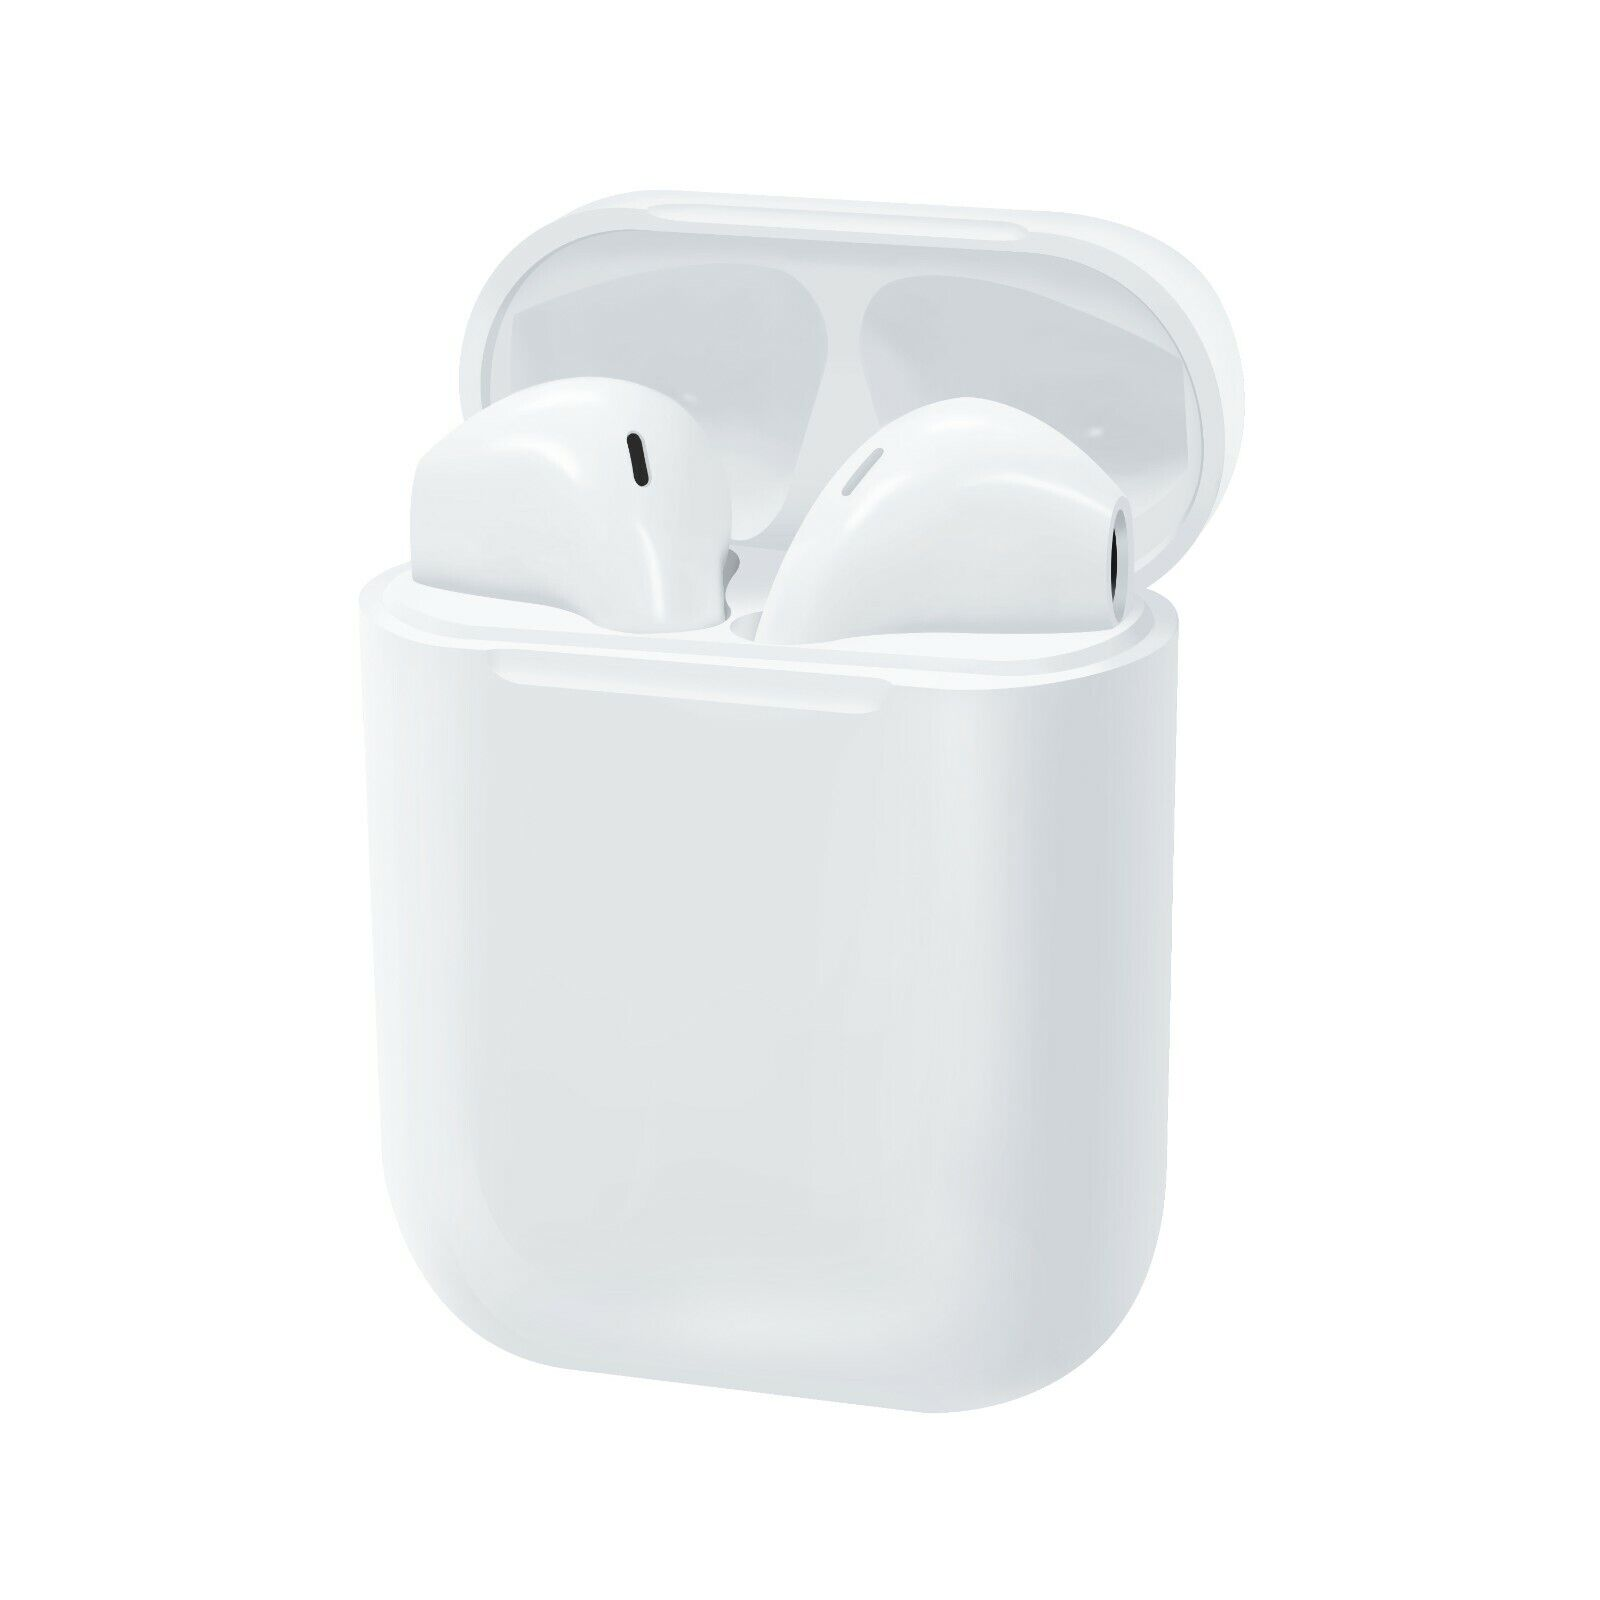 Wireless Earbuds Bluetooth Headphones Compatible with Apple AirPods iPhone iPad 1